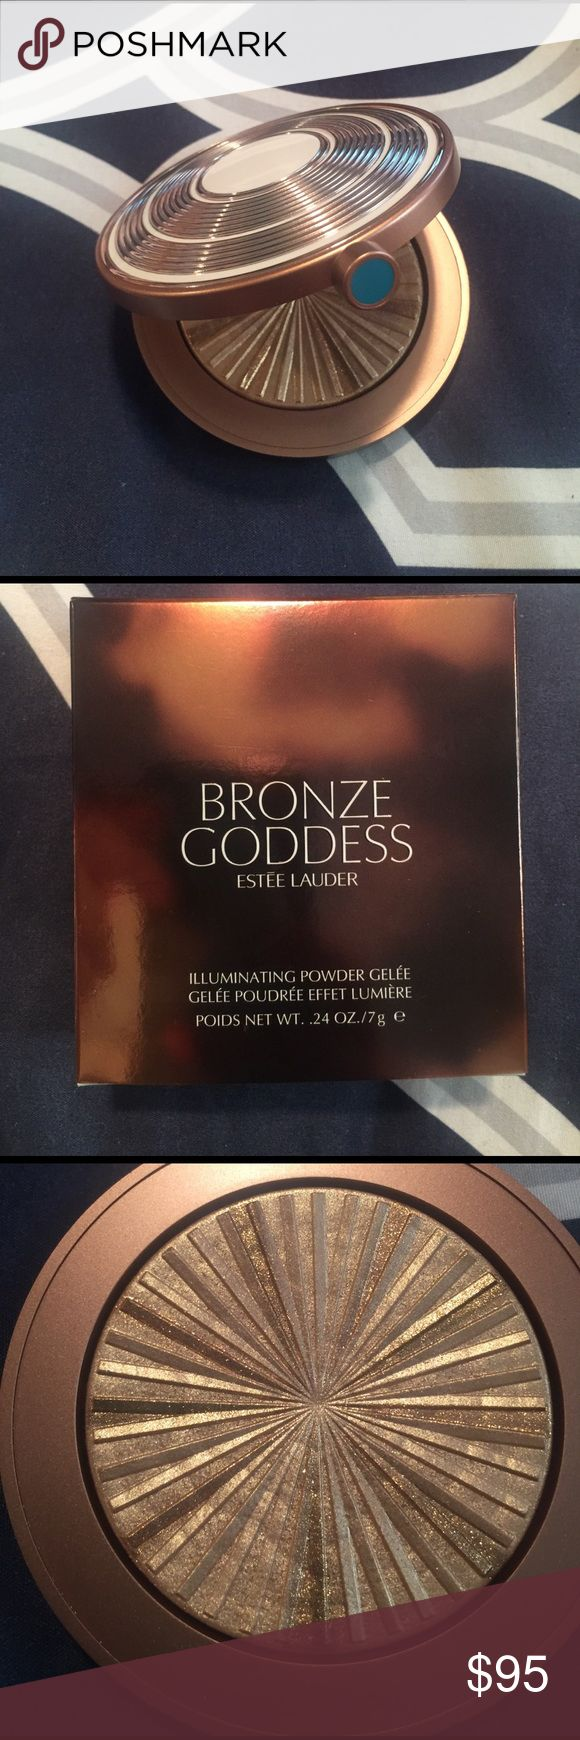 Estée Lauder Heatwave Brand new in box, never swatched. Beautiful gold highlighter. It is a must have! This was my back up but I've decided to let one go. Open to offers. Estee Lauder Makeup Luminizer